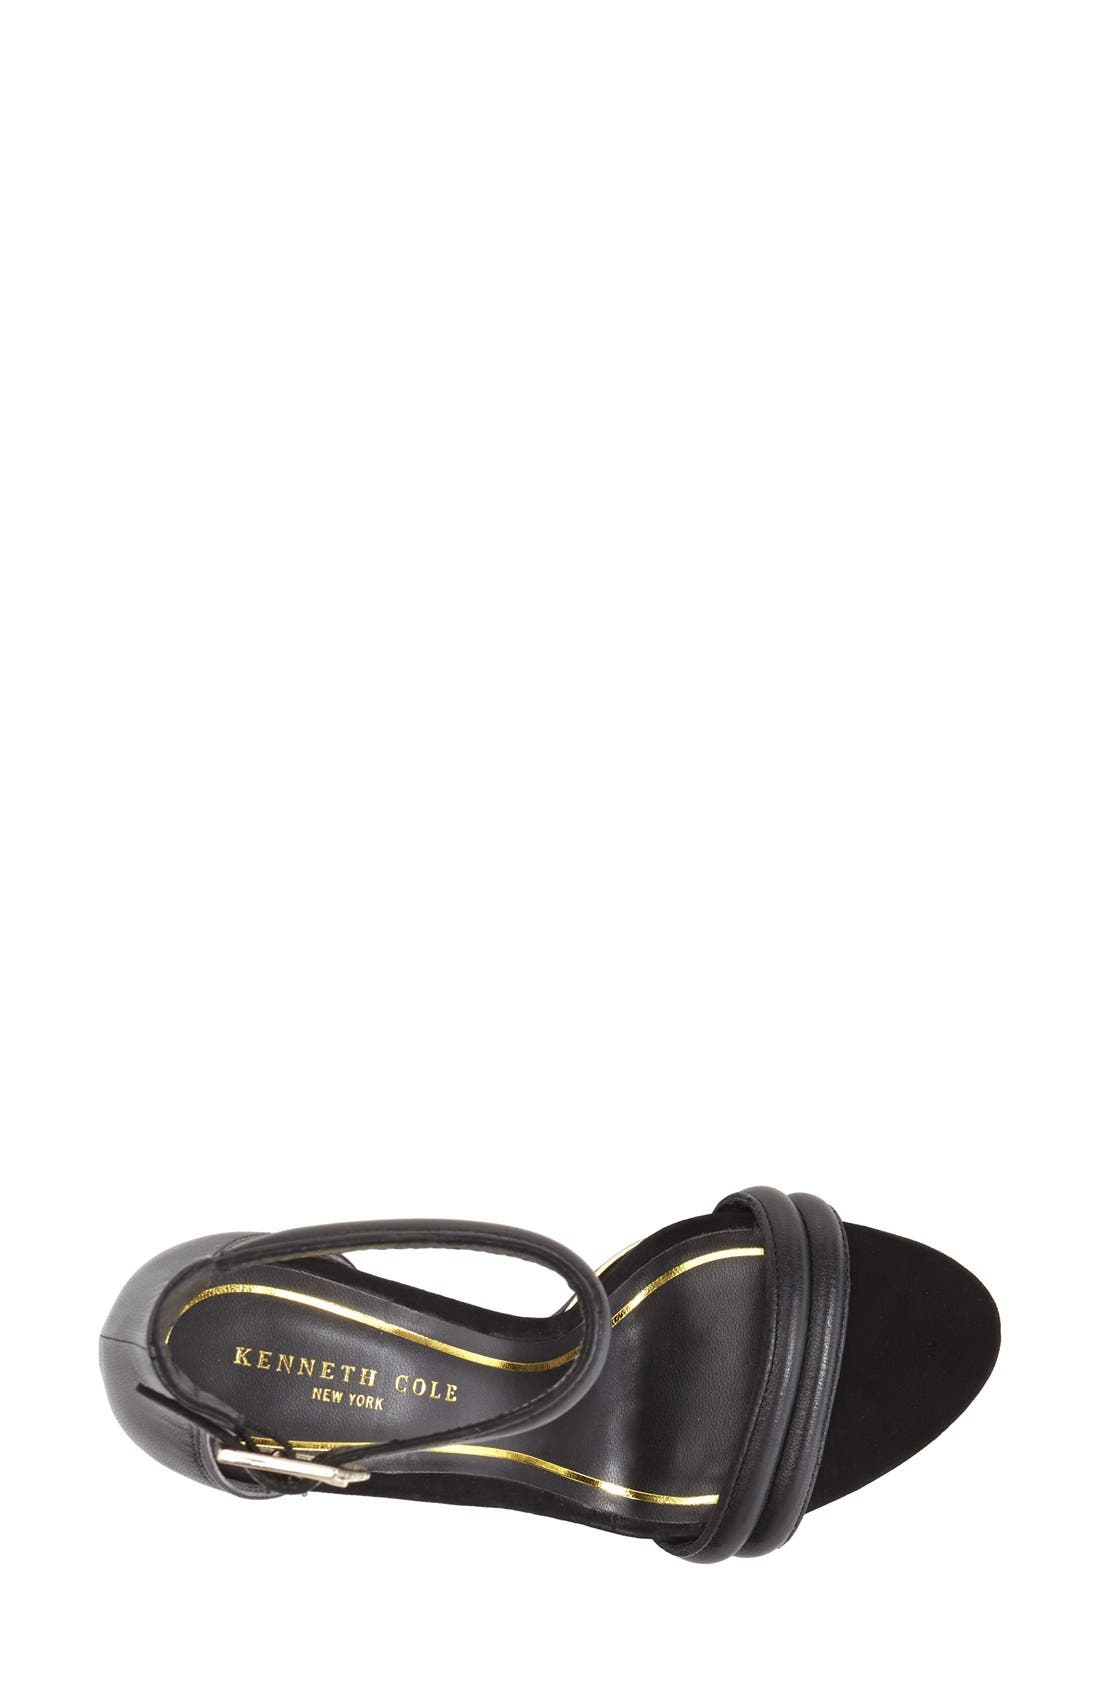 'Brooke' Ankle Strap Sandal,                             Alternate thumbnail 3, color,                             Black Leather